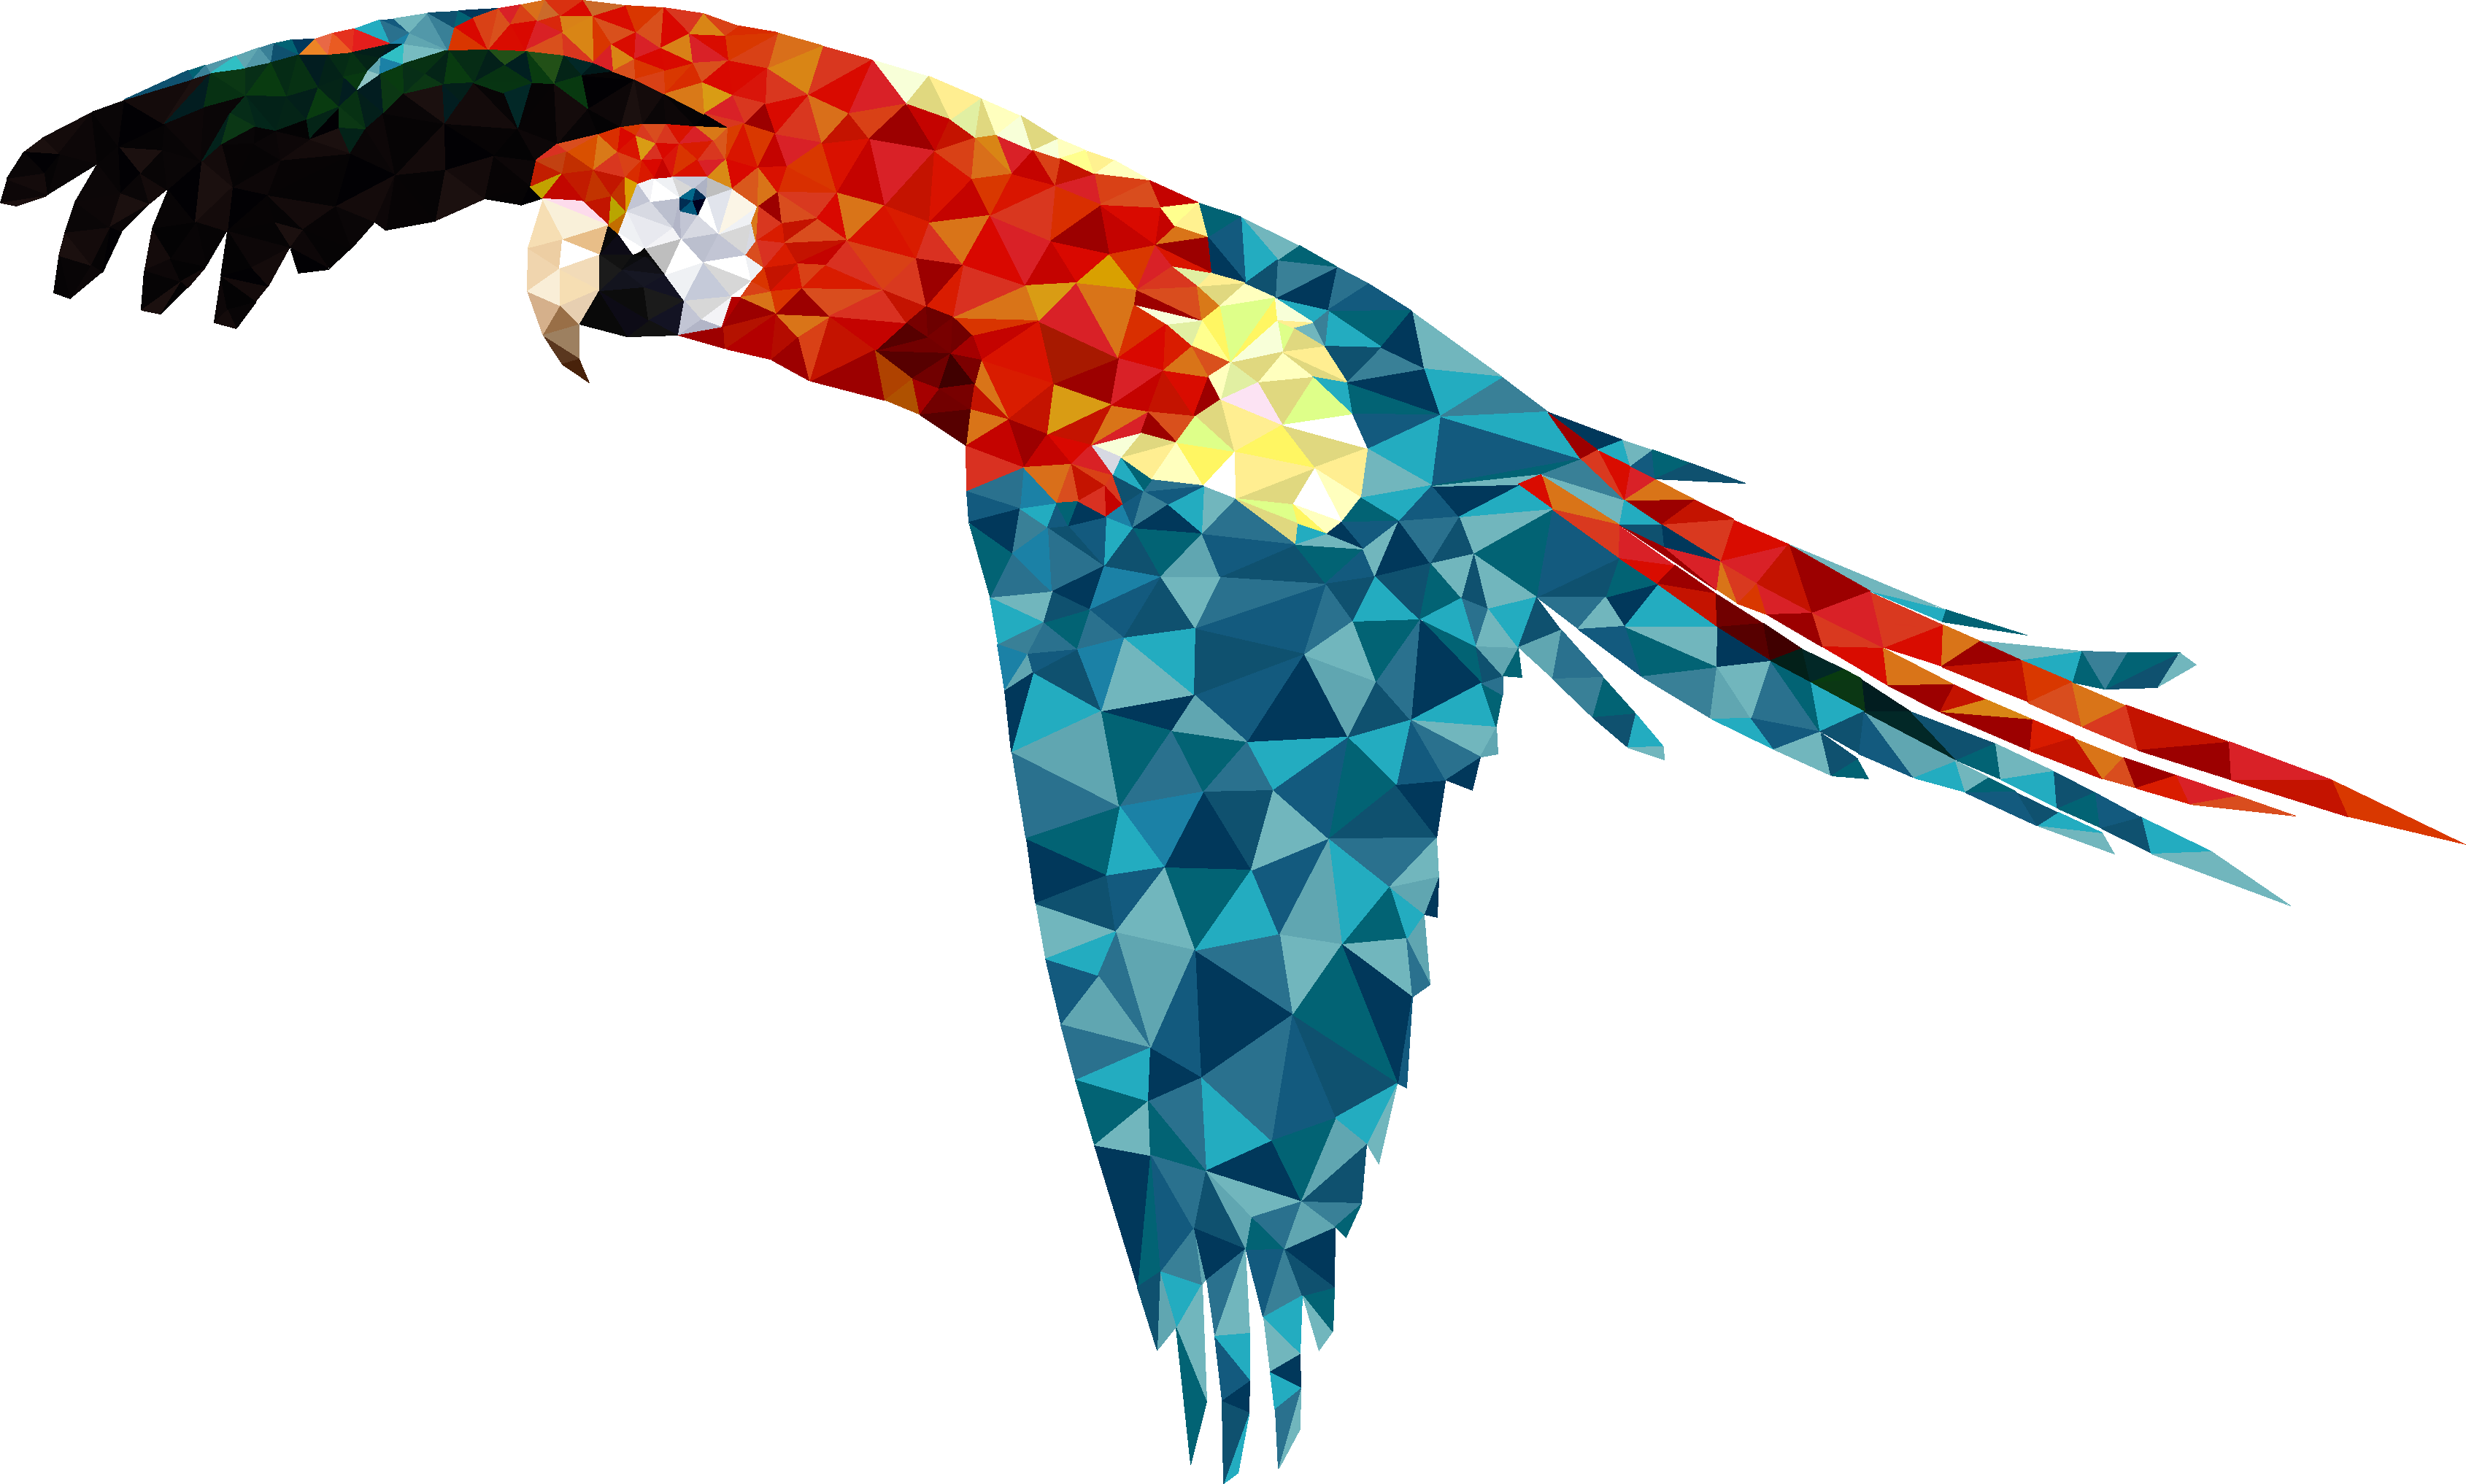 Scarlet Macaw-digital sketches Showflipper by Casca